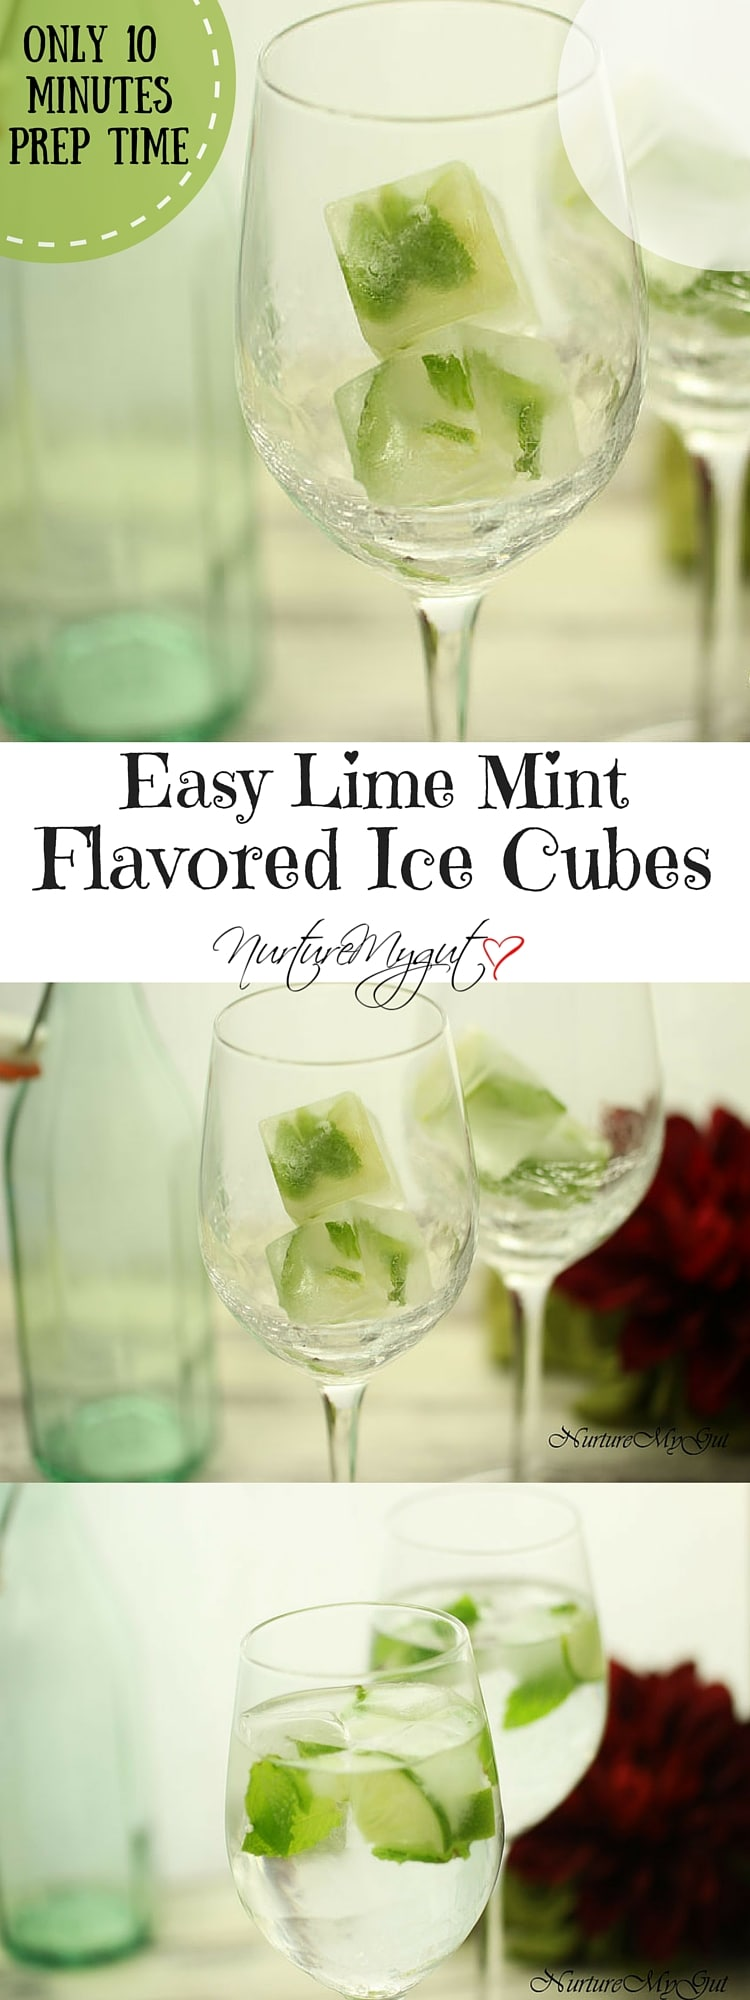 easy lime mint flavored ice cubes